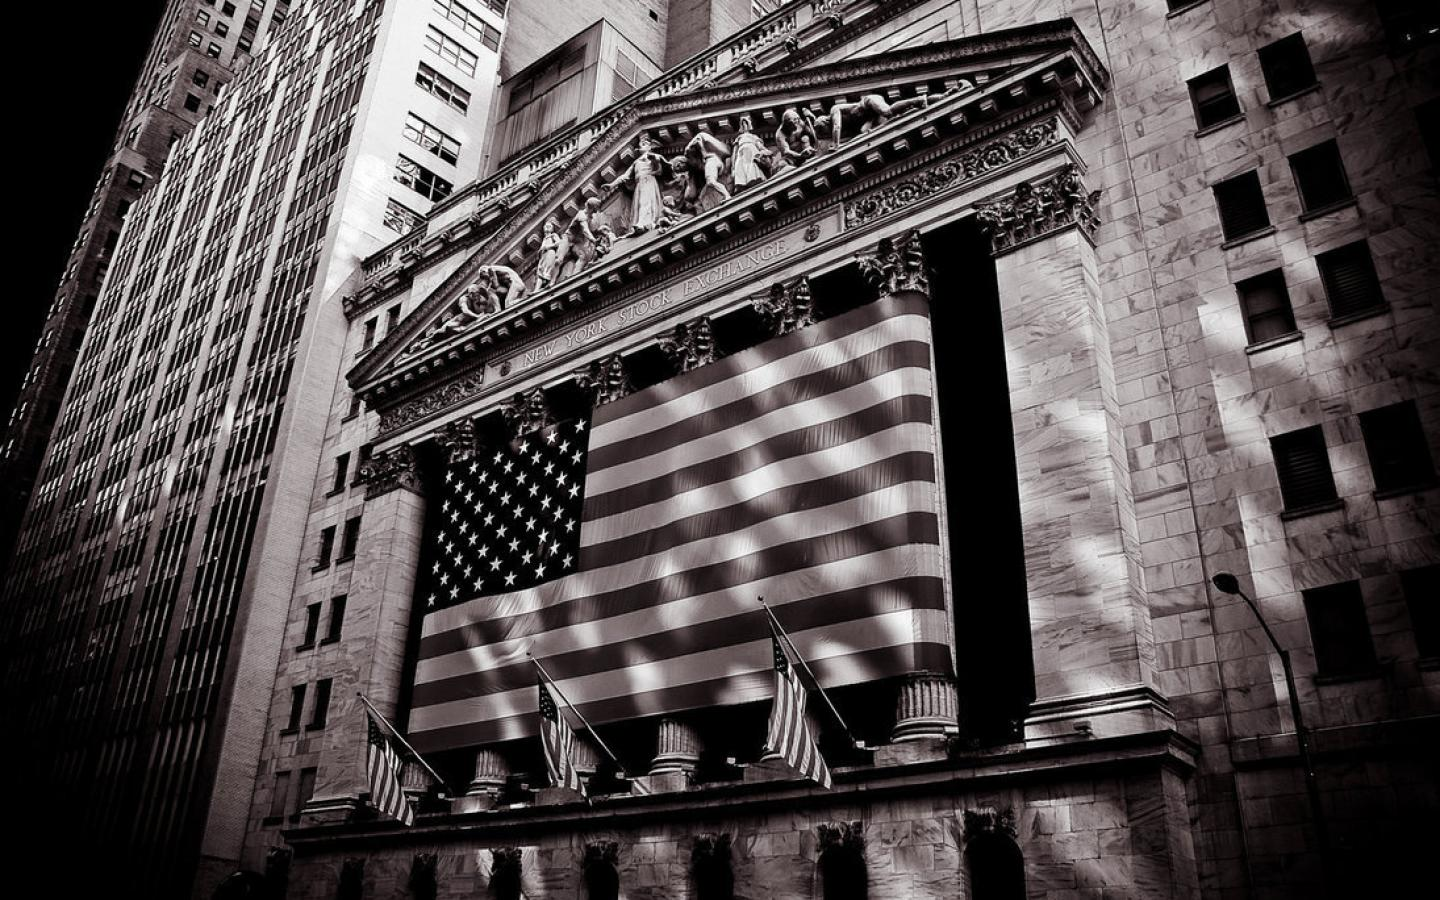 Wall Street Wallpapers - Top Free Wall Street Backgrounds ...